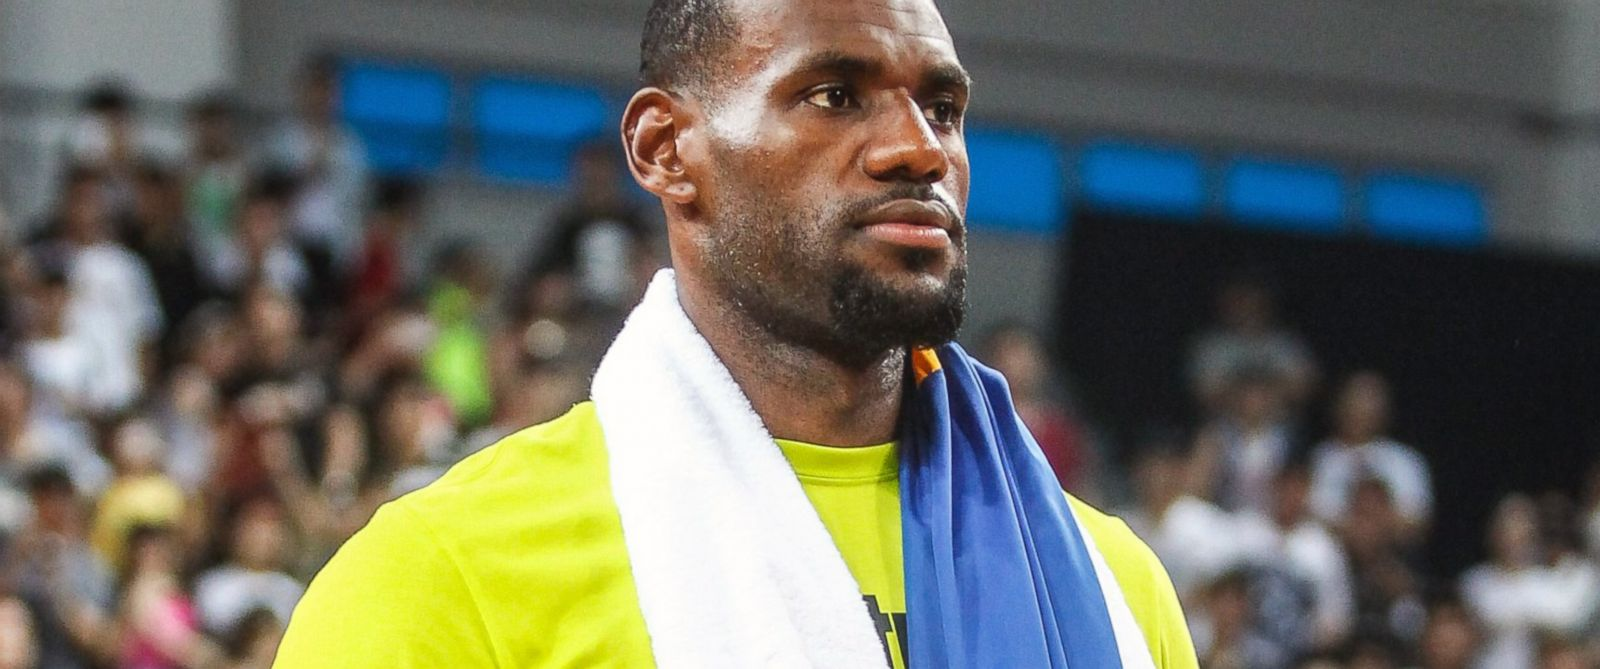 PHOTO: LeBron James of the Cleveland Cavaliers meets fans at Guangzhou Sport University, July 22, 2014, in Guangzhou, China.